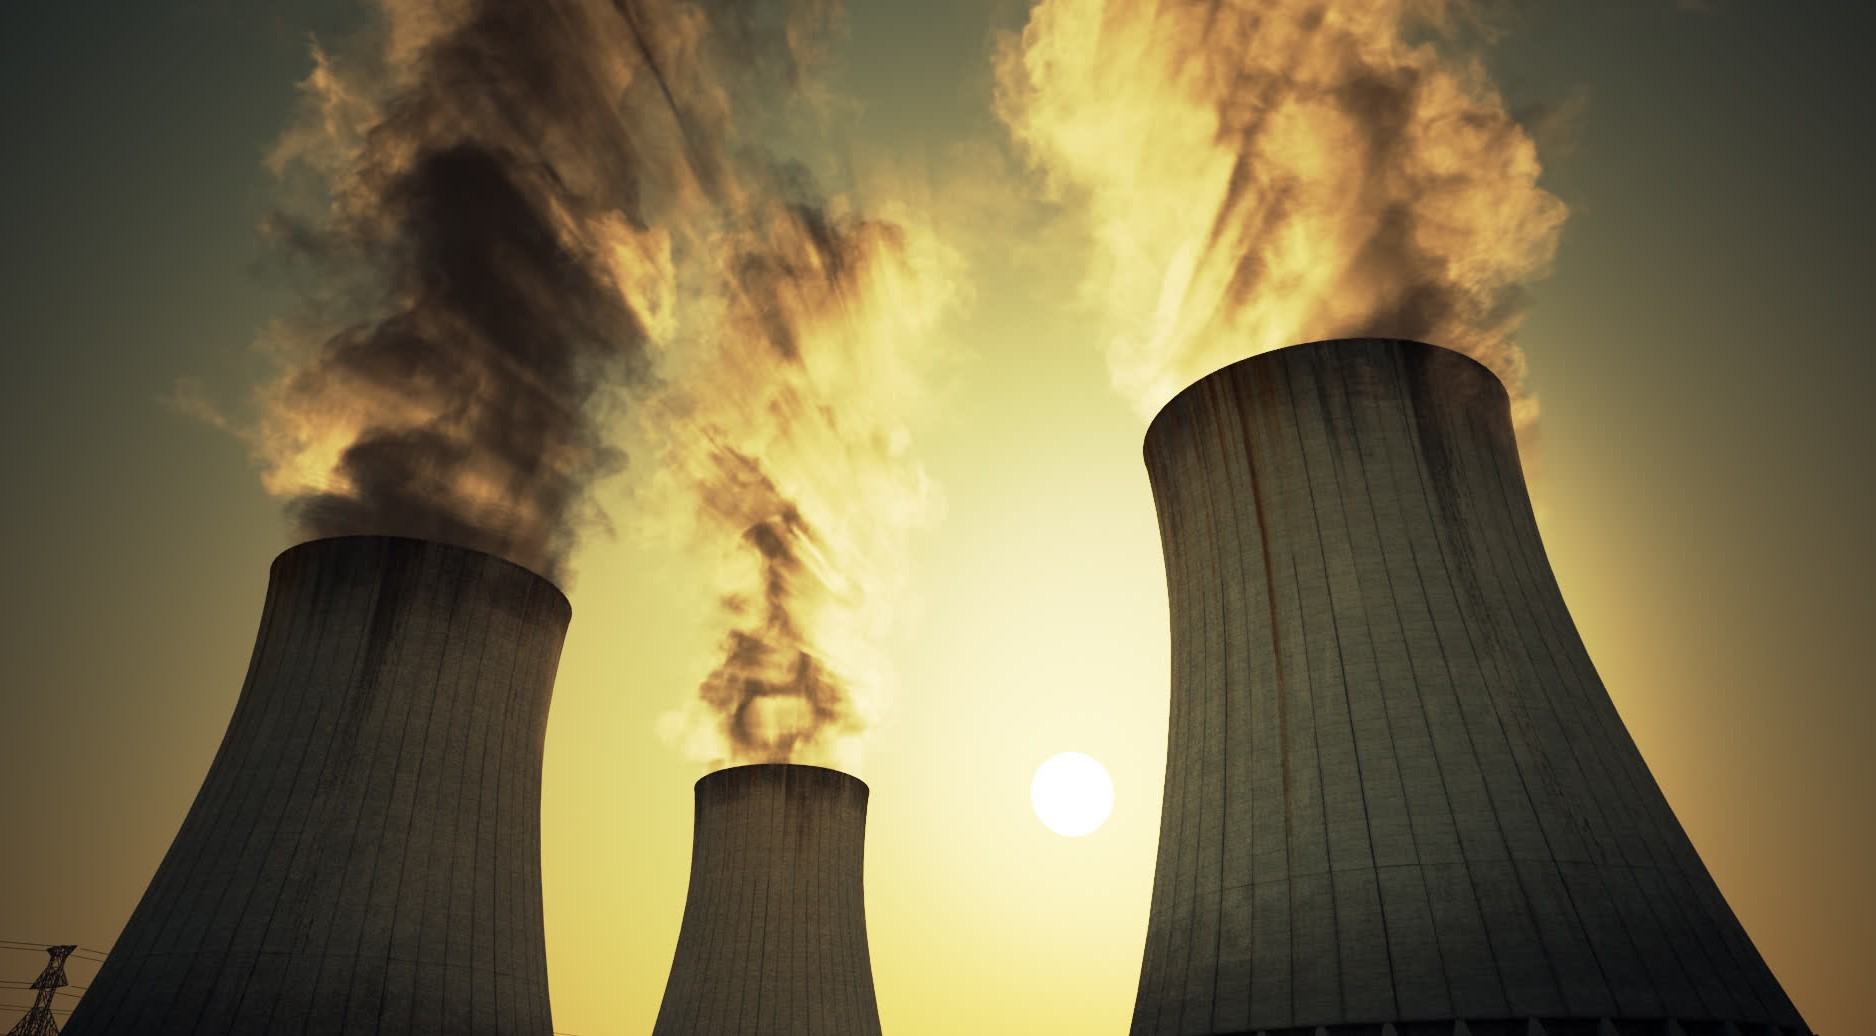 stock-footage-nuclear-power-plant-three-large-tall-cement-chimneys-cooling-towers-exhausting-smoke-and-fumes